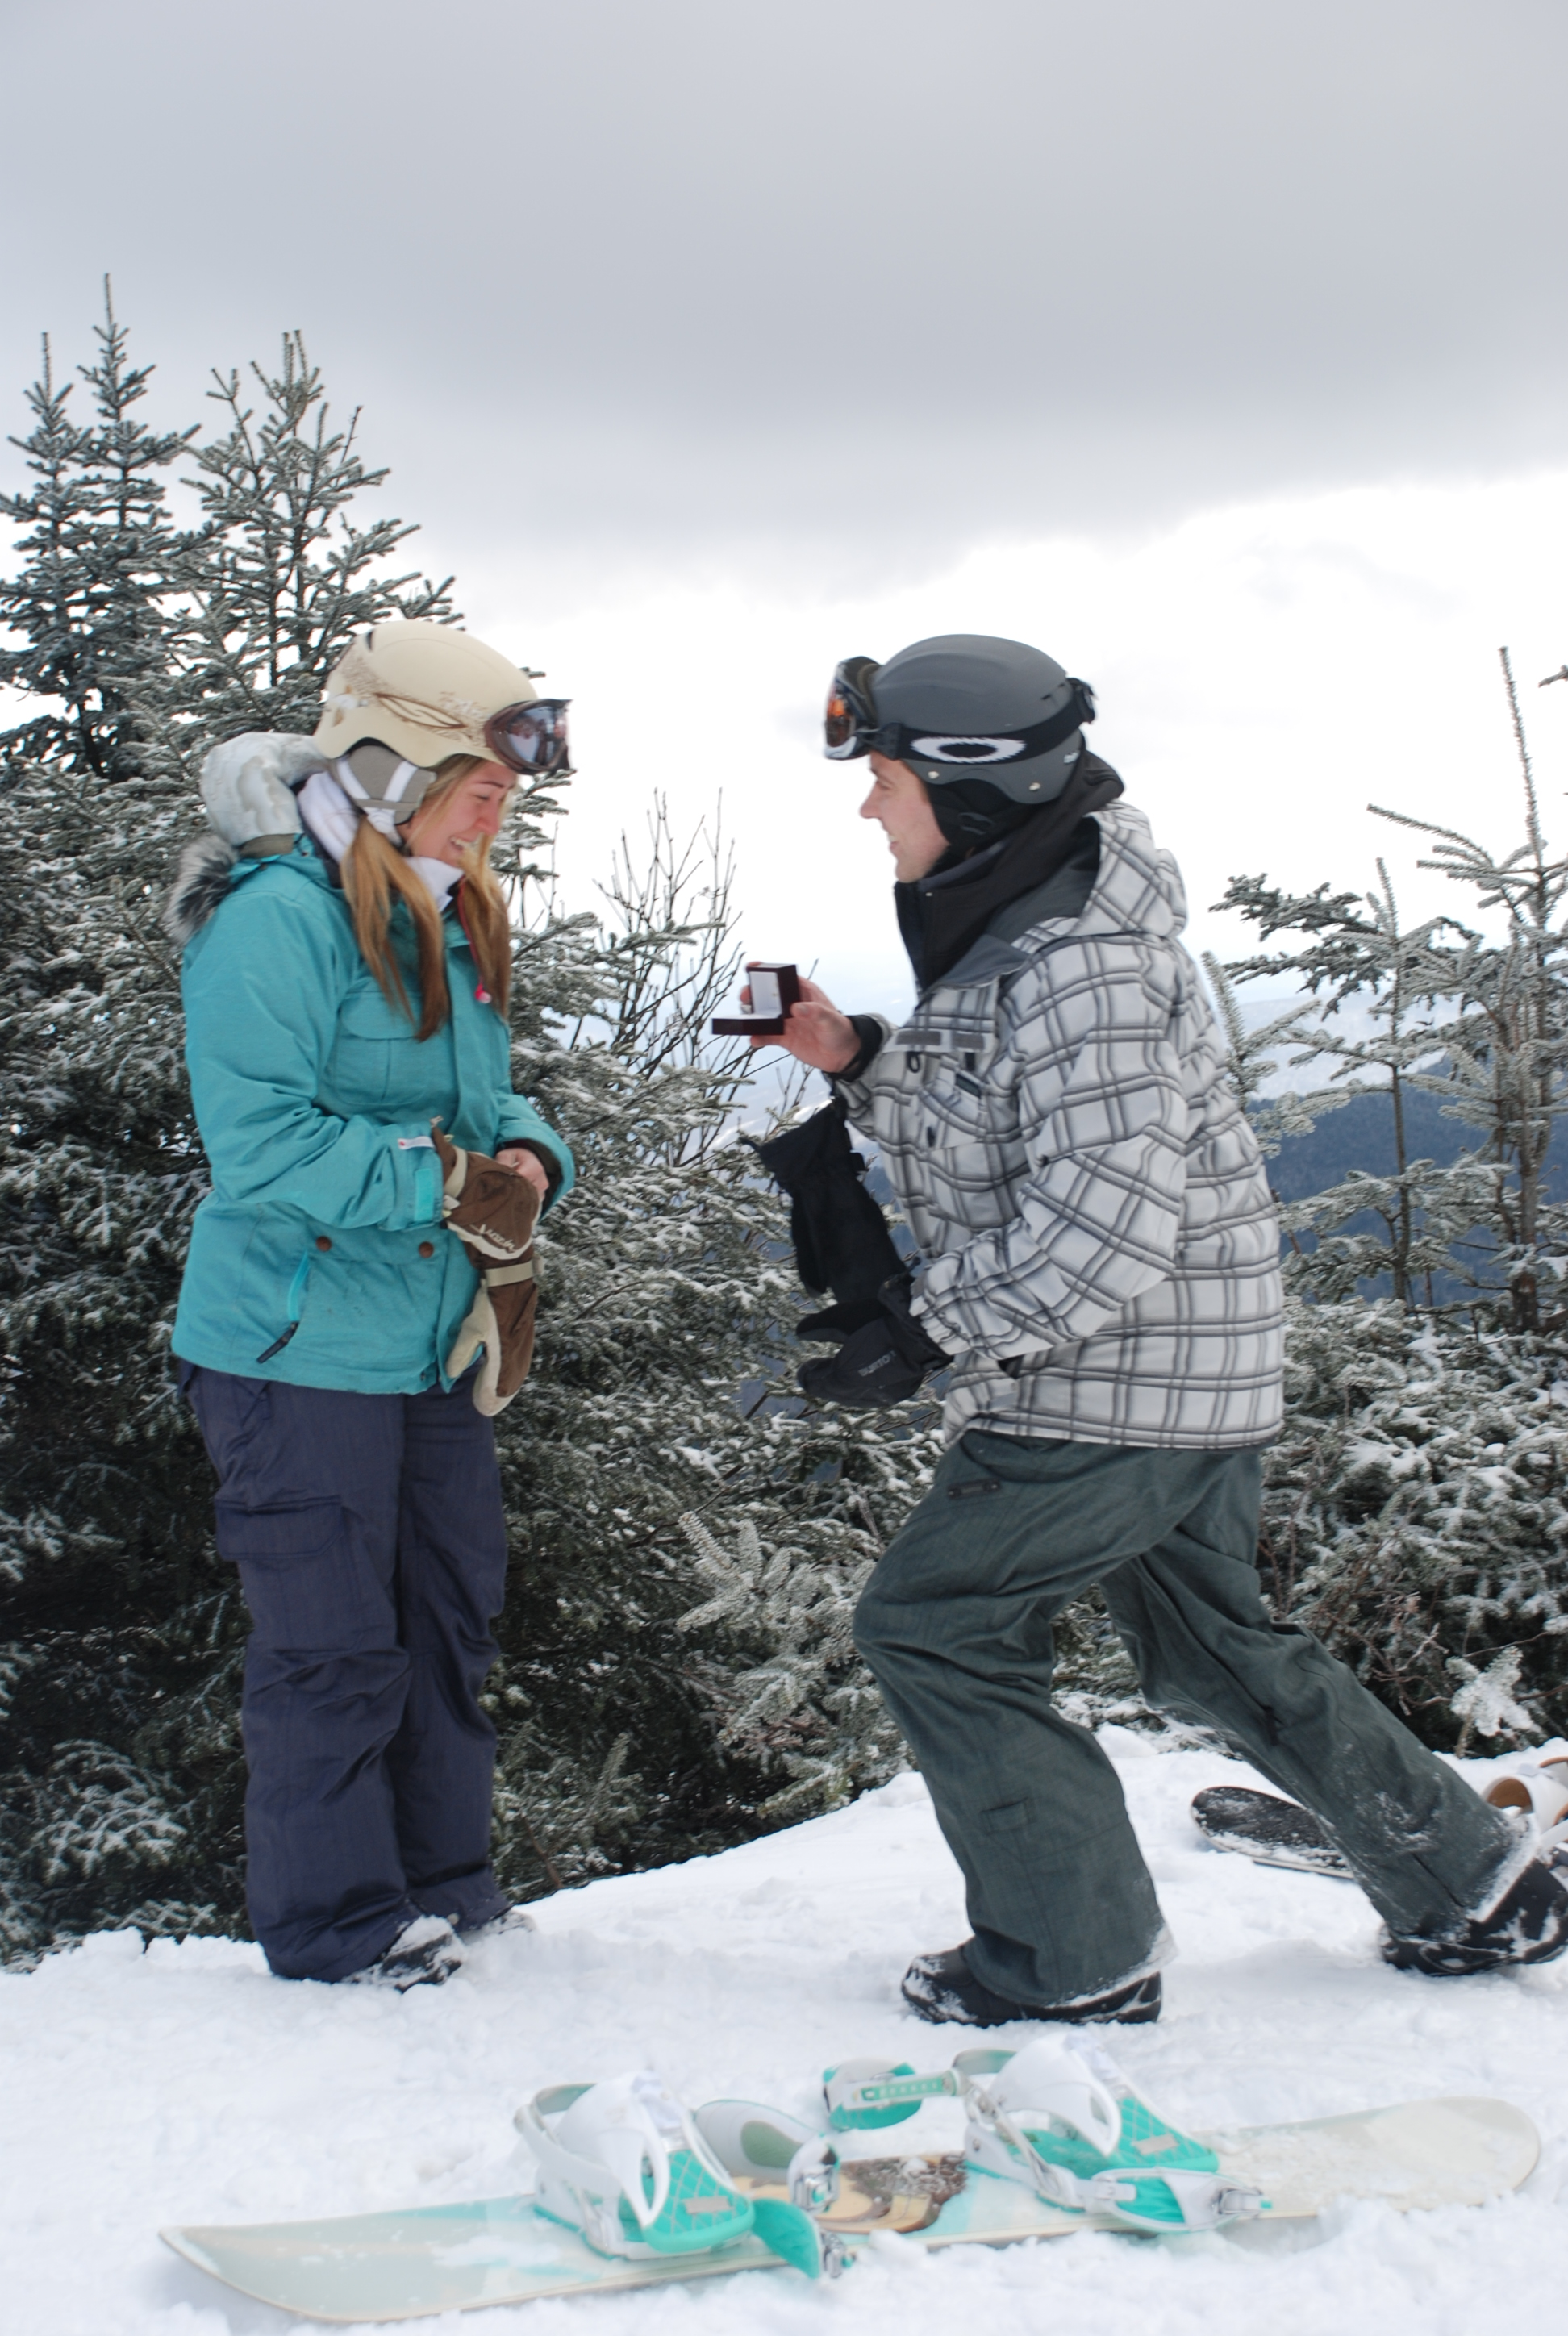 Image 3 of Kate and Chris | Snowboard Proposal